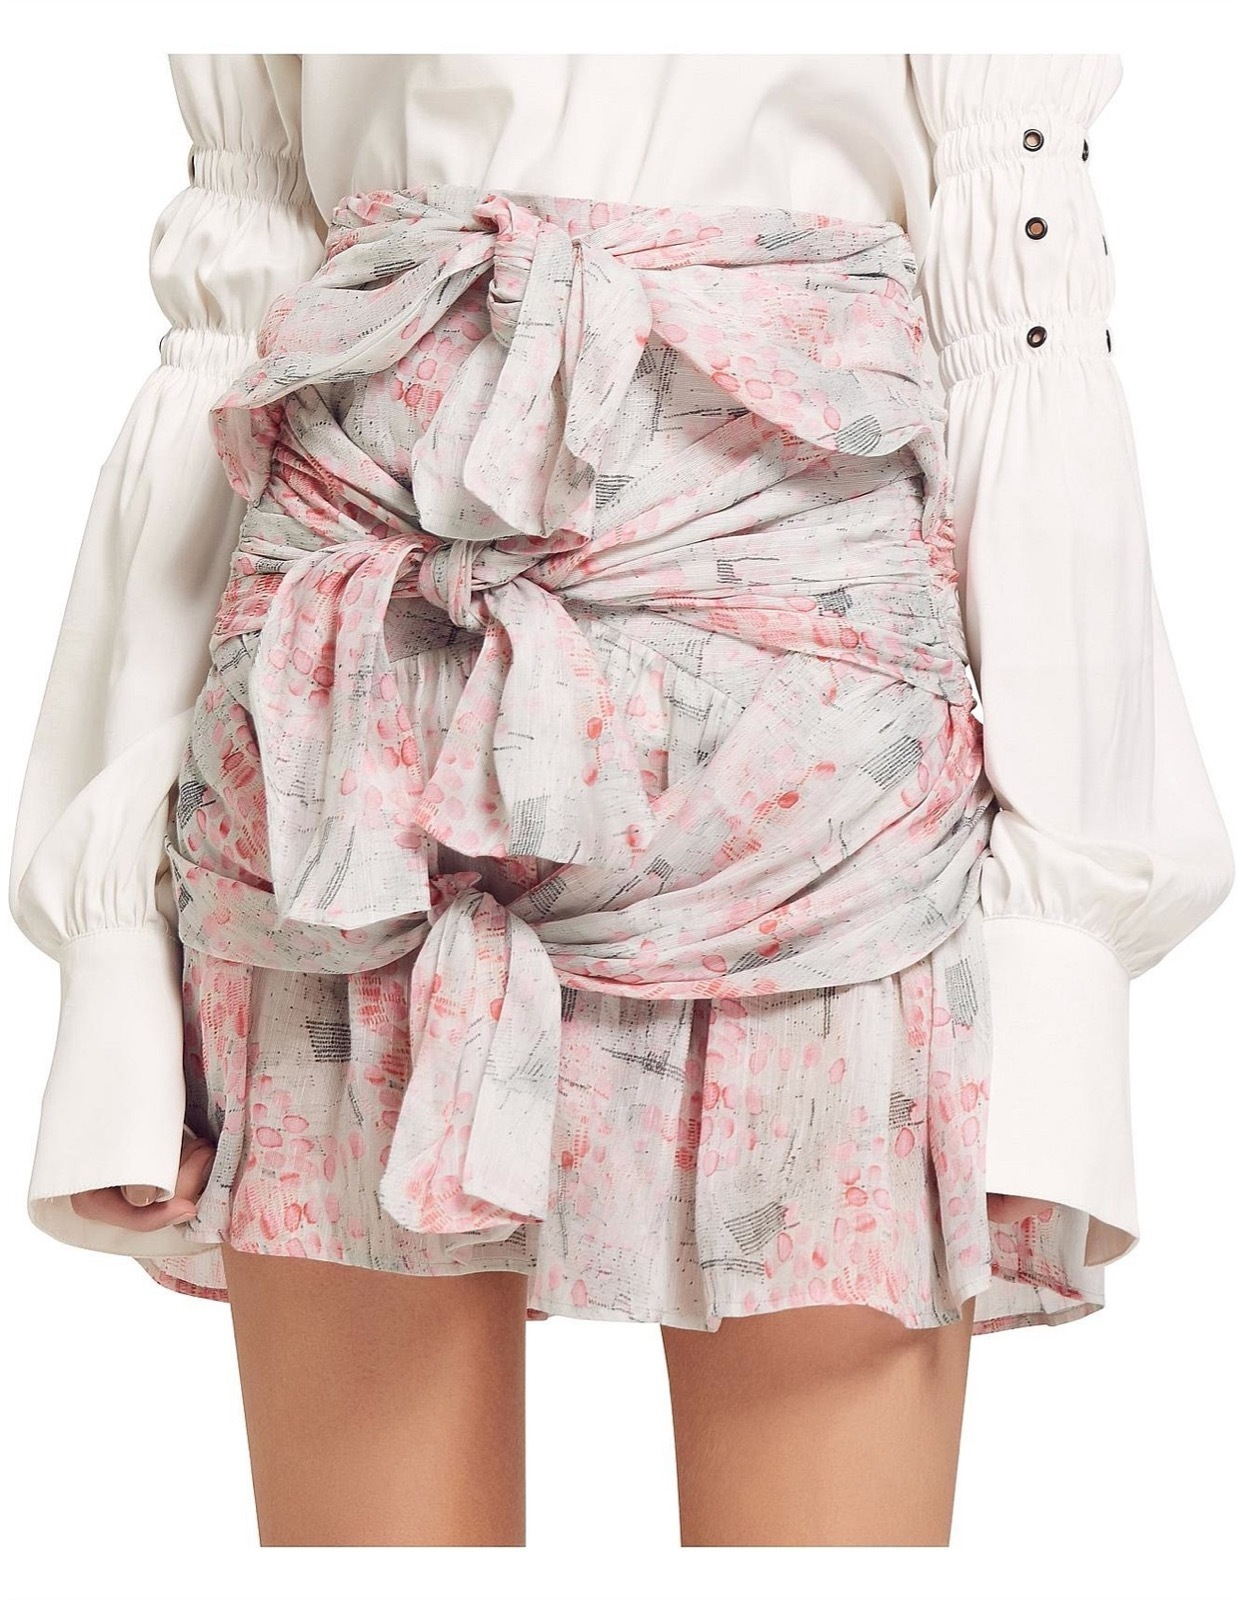 Buy: Old Hearts Fall Skirt BNWT Size 6